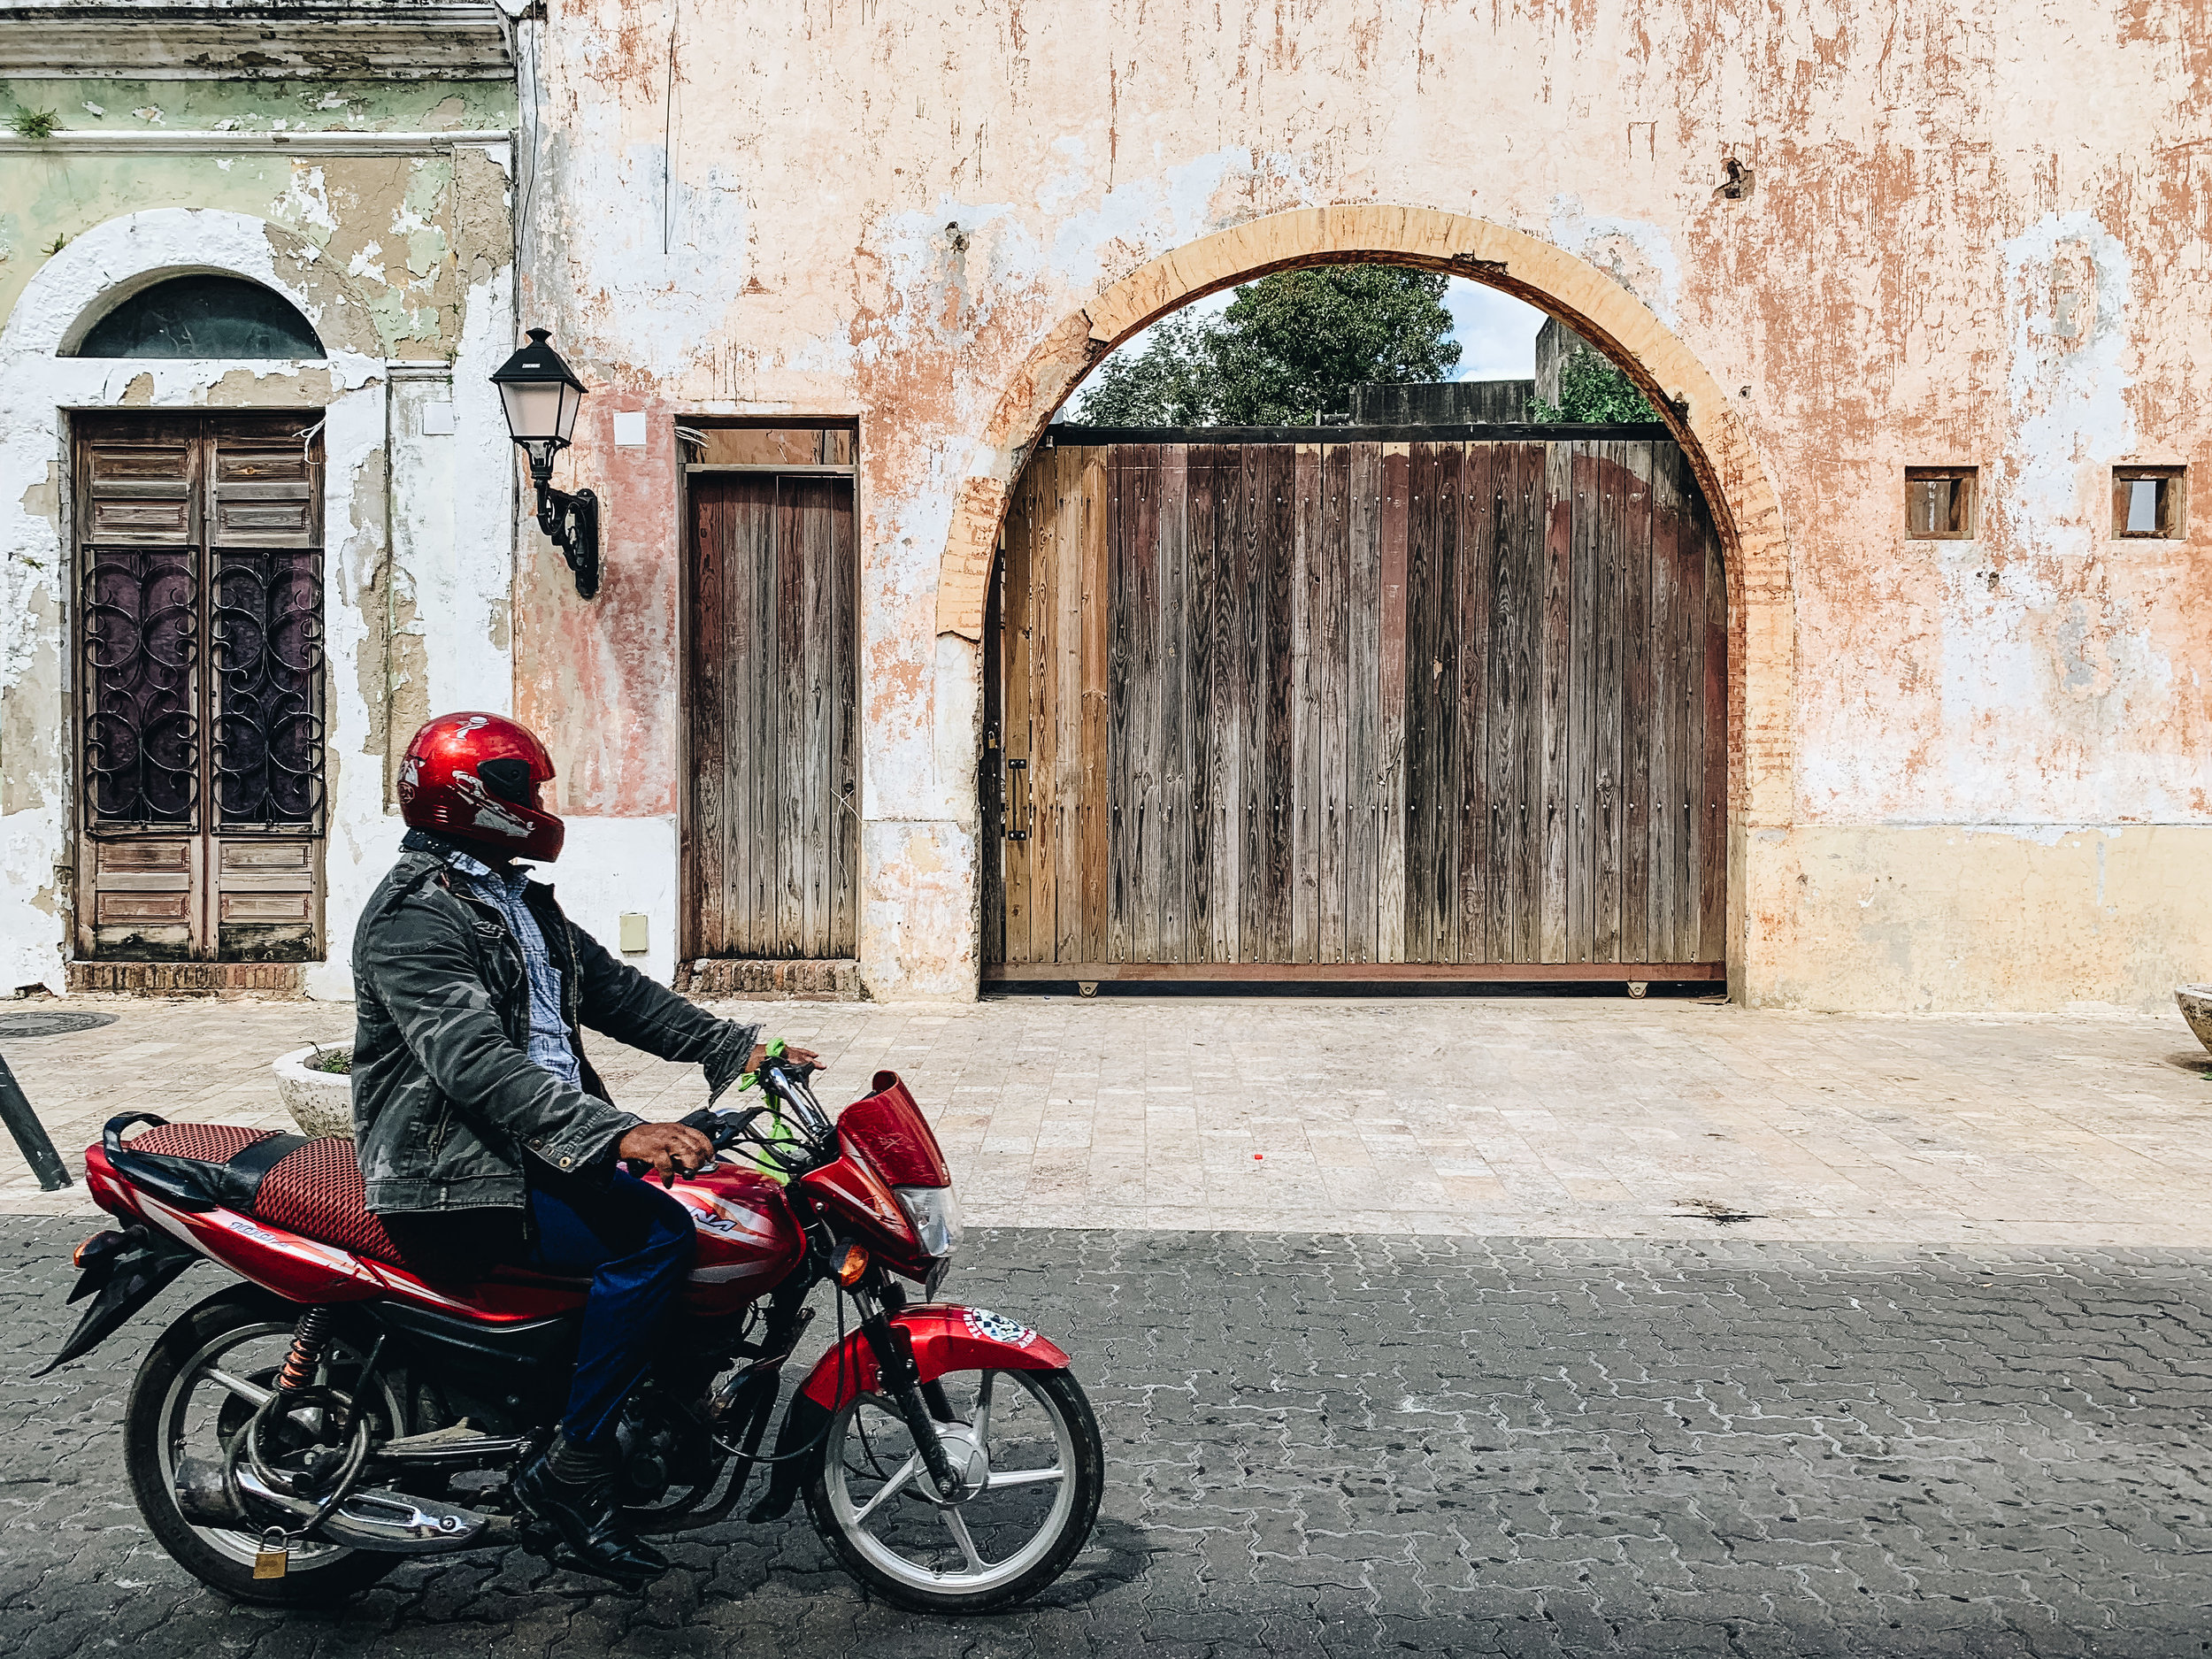 Biker's red toy stands out against peeling textures of old wall in Zona Colonial, Dominican Republic